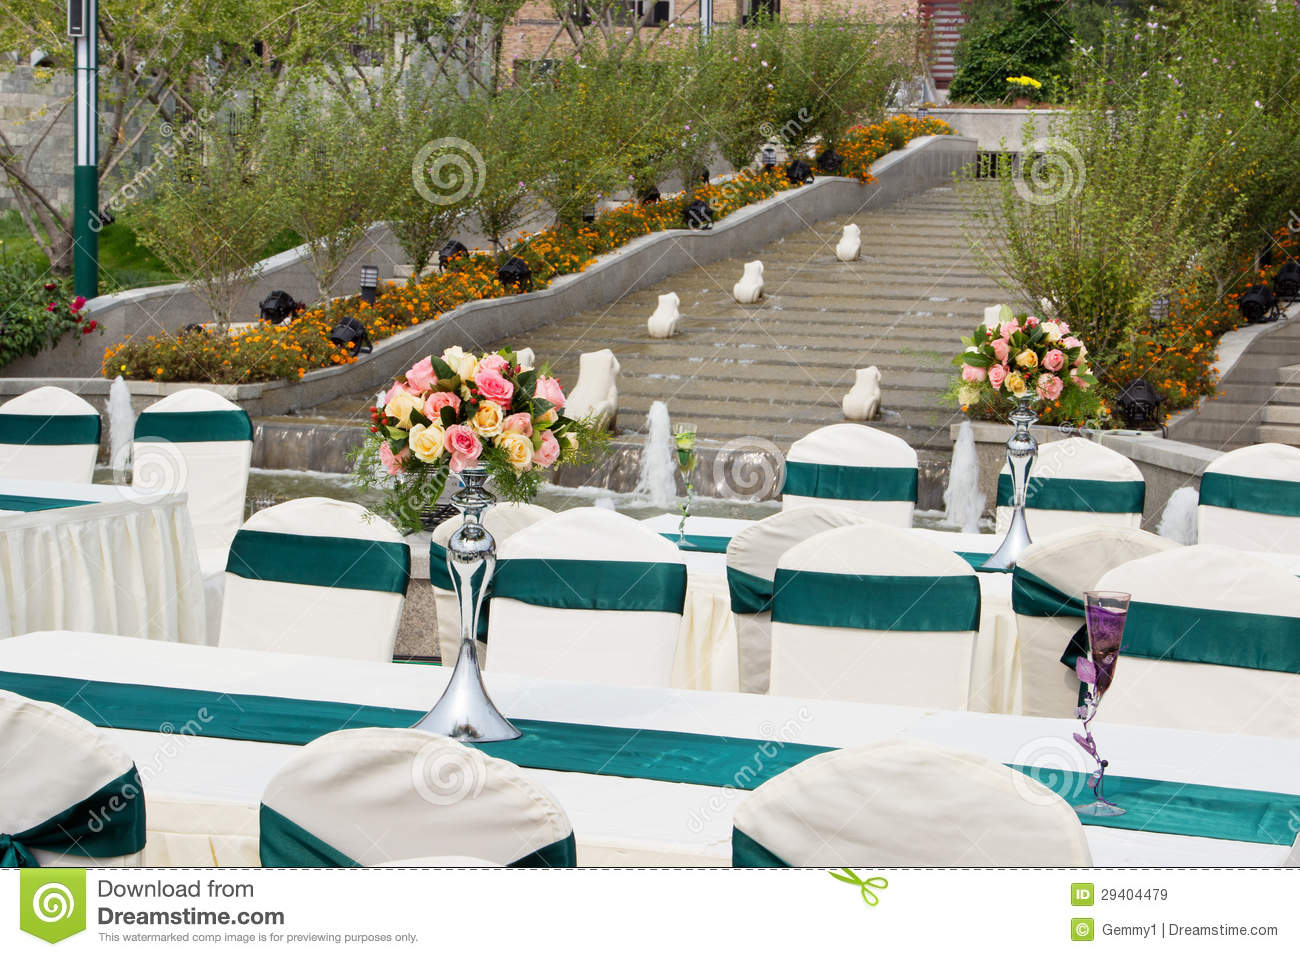 Table Settings For Wedding Or Event Party Outdoor At Park